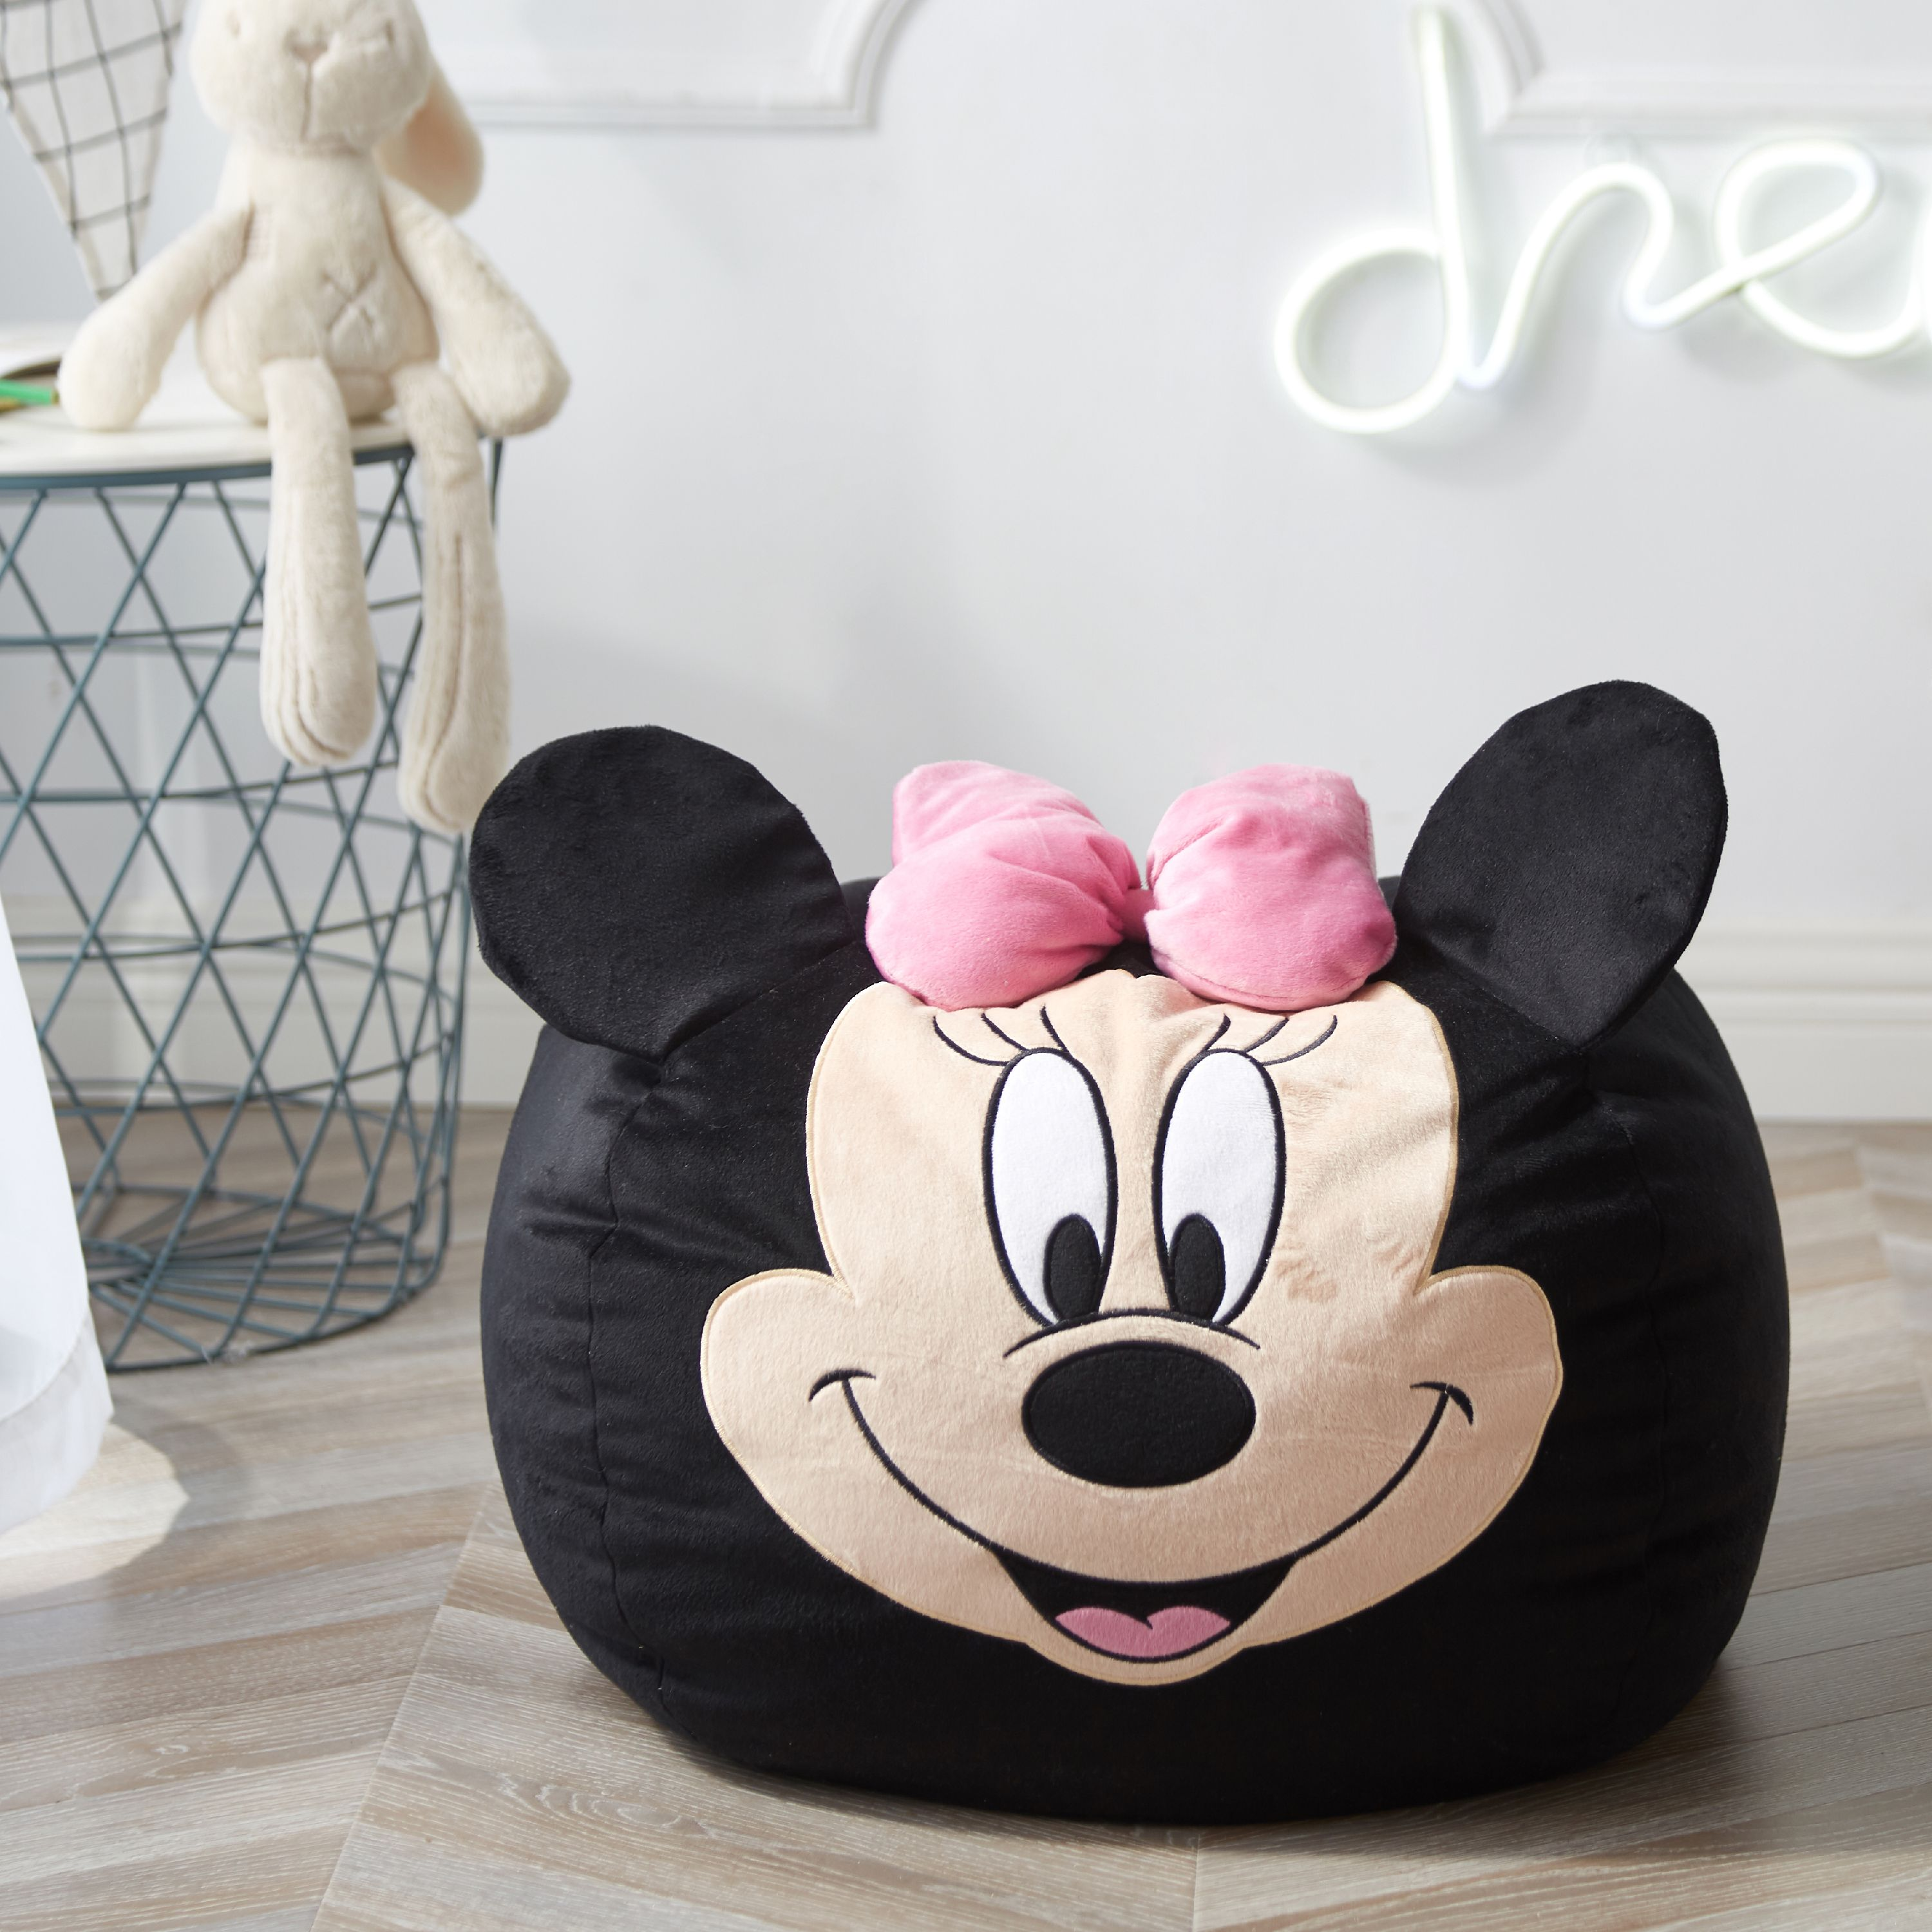 Disney Minnie Mouse Figural Bean Bag Chair